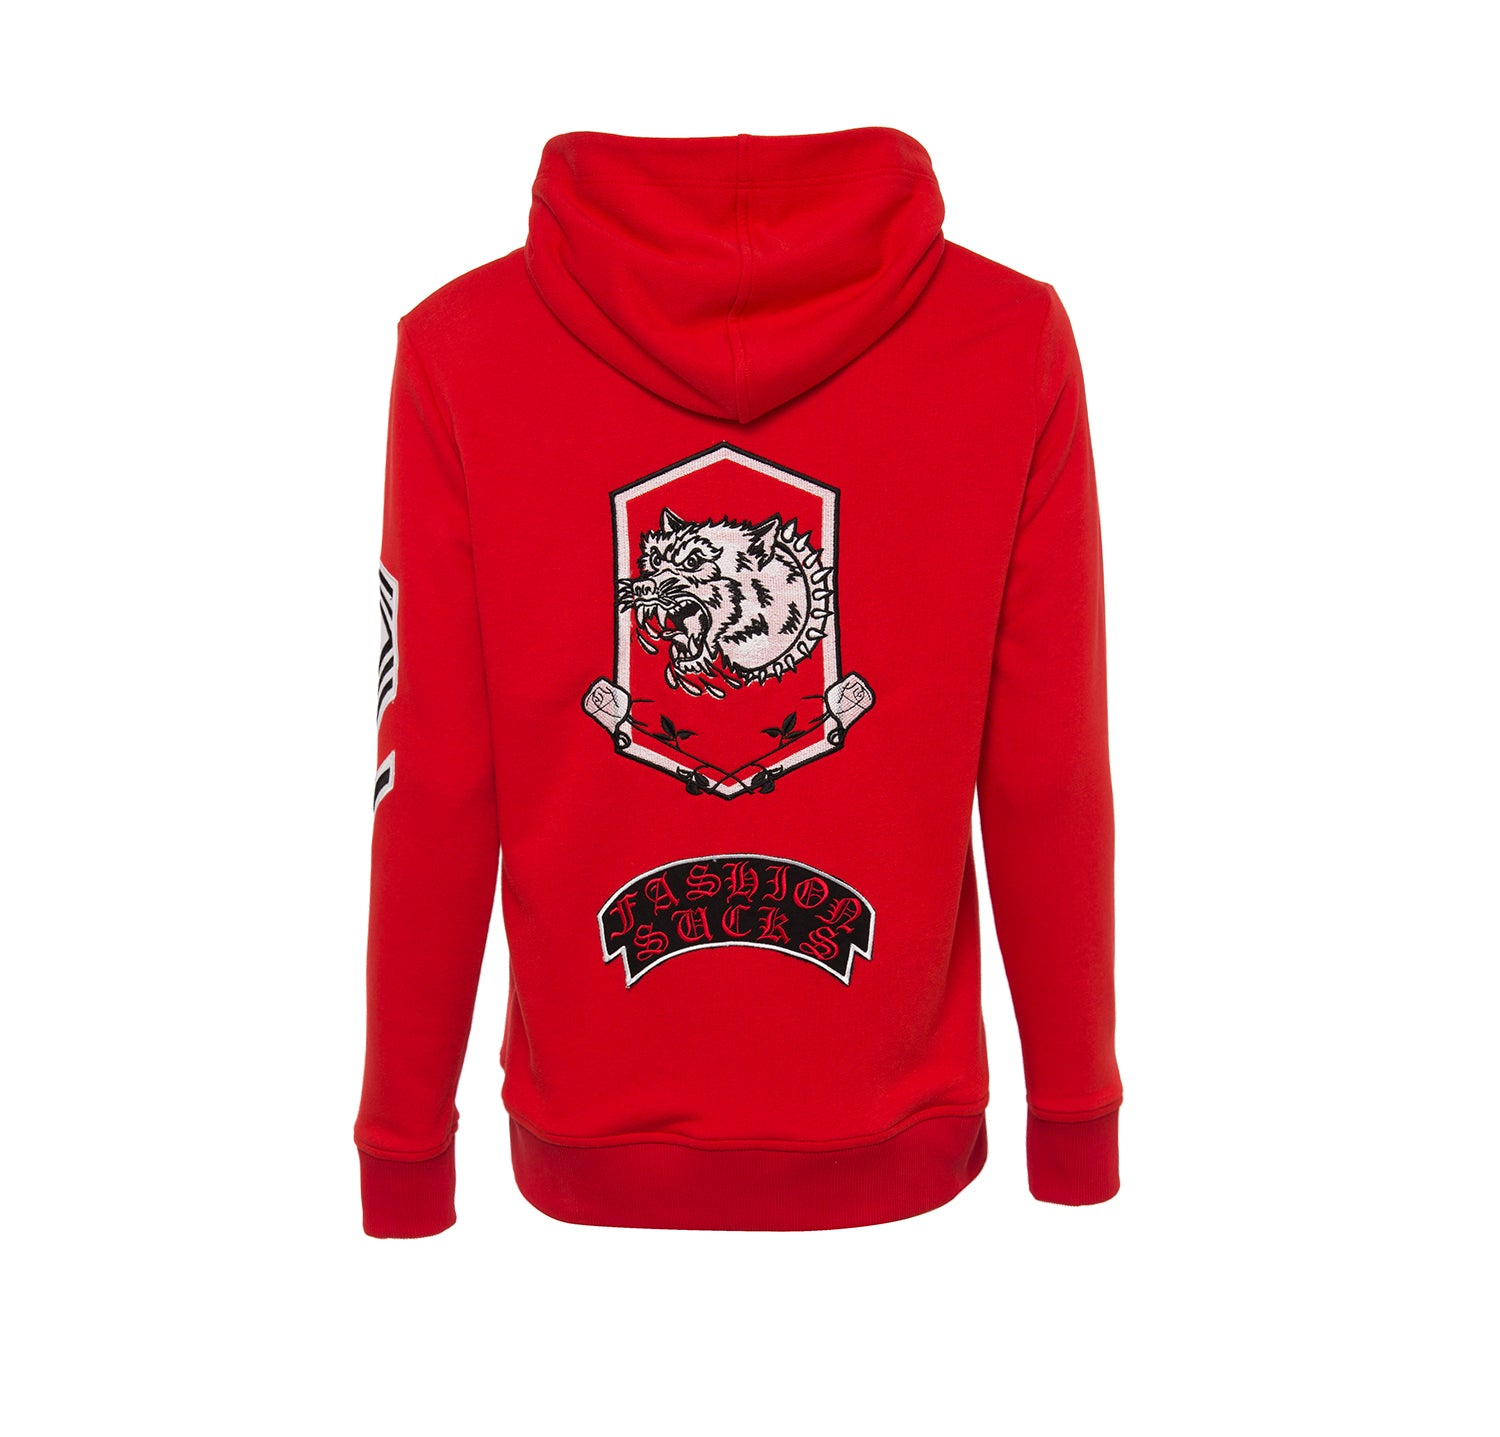 ULTRA PATCHED RED SWEATSHIRT